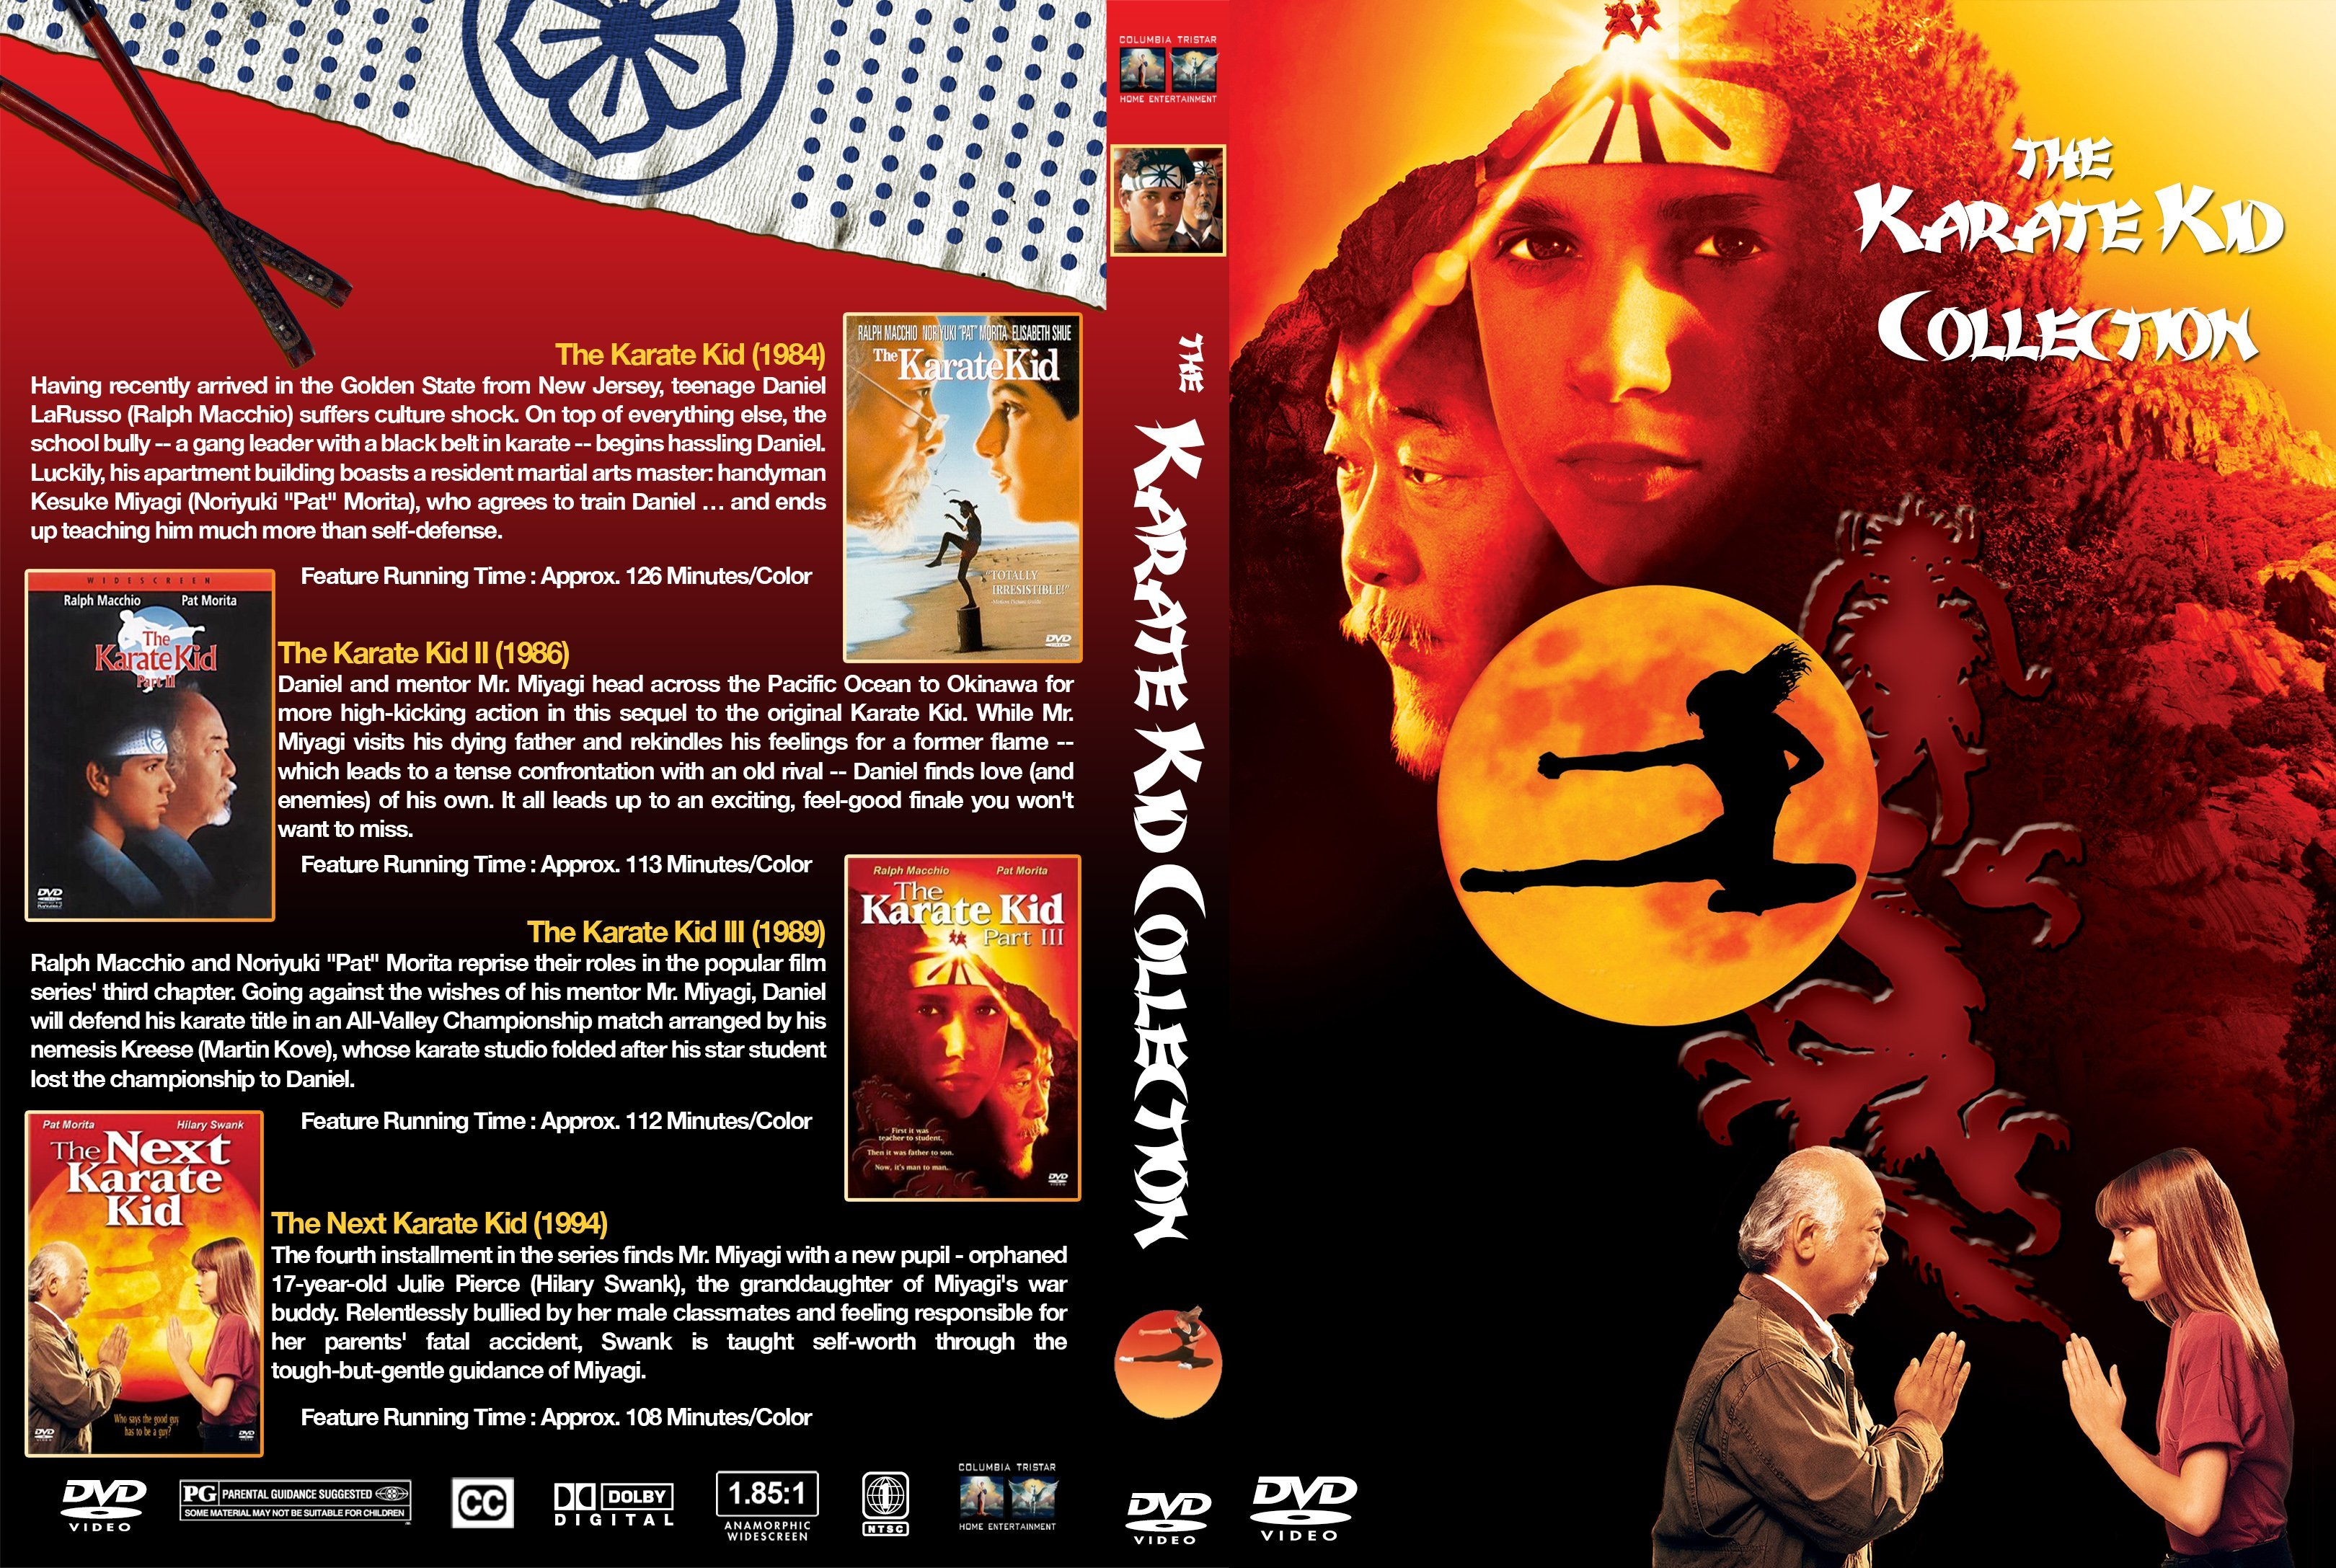 The Karate Kid Collection Custom Covers Dvd